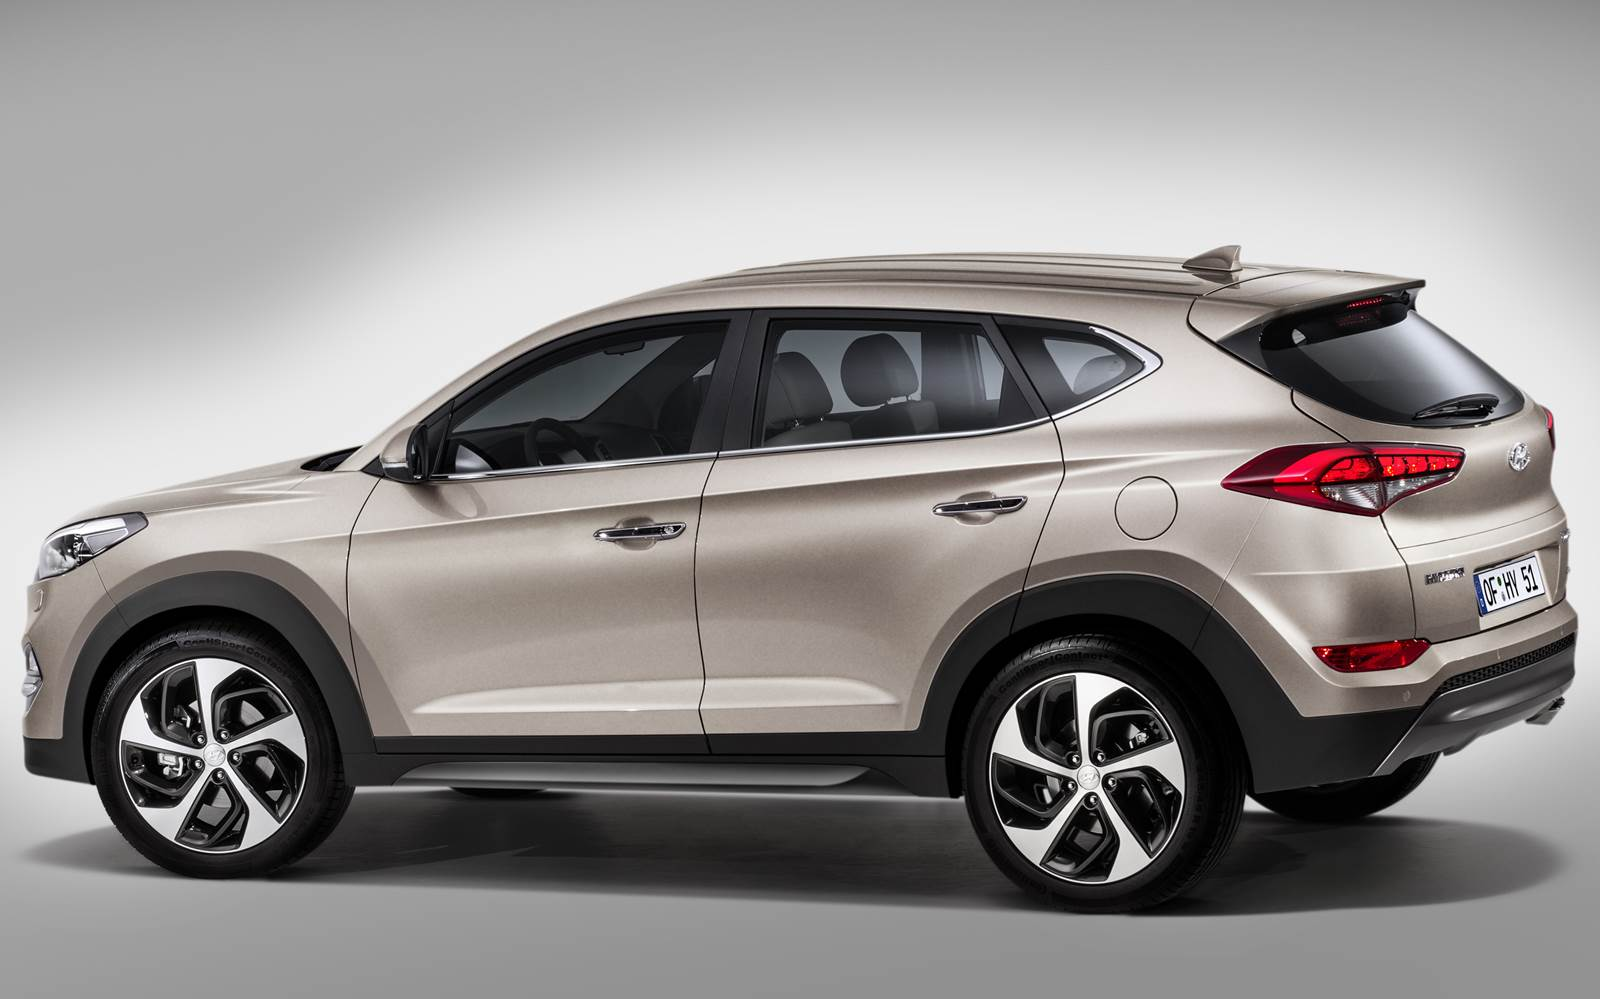 novo hyundai tucson 2016 n o ser vendido no brasil car blog br. Black Bedroom Furniture Sets. Home Design Ideas